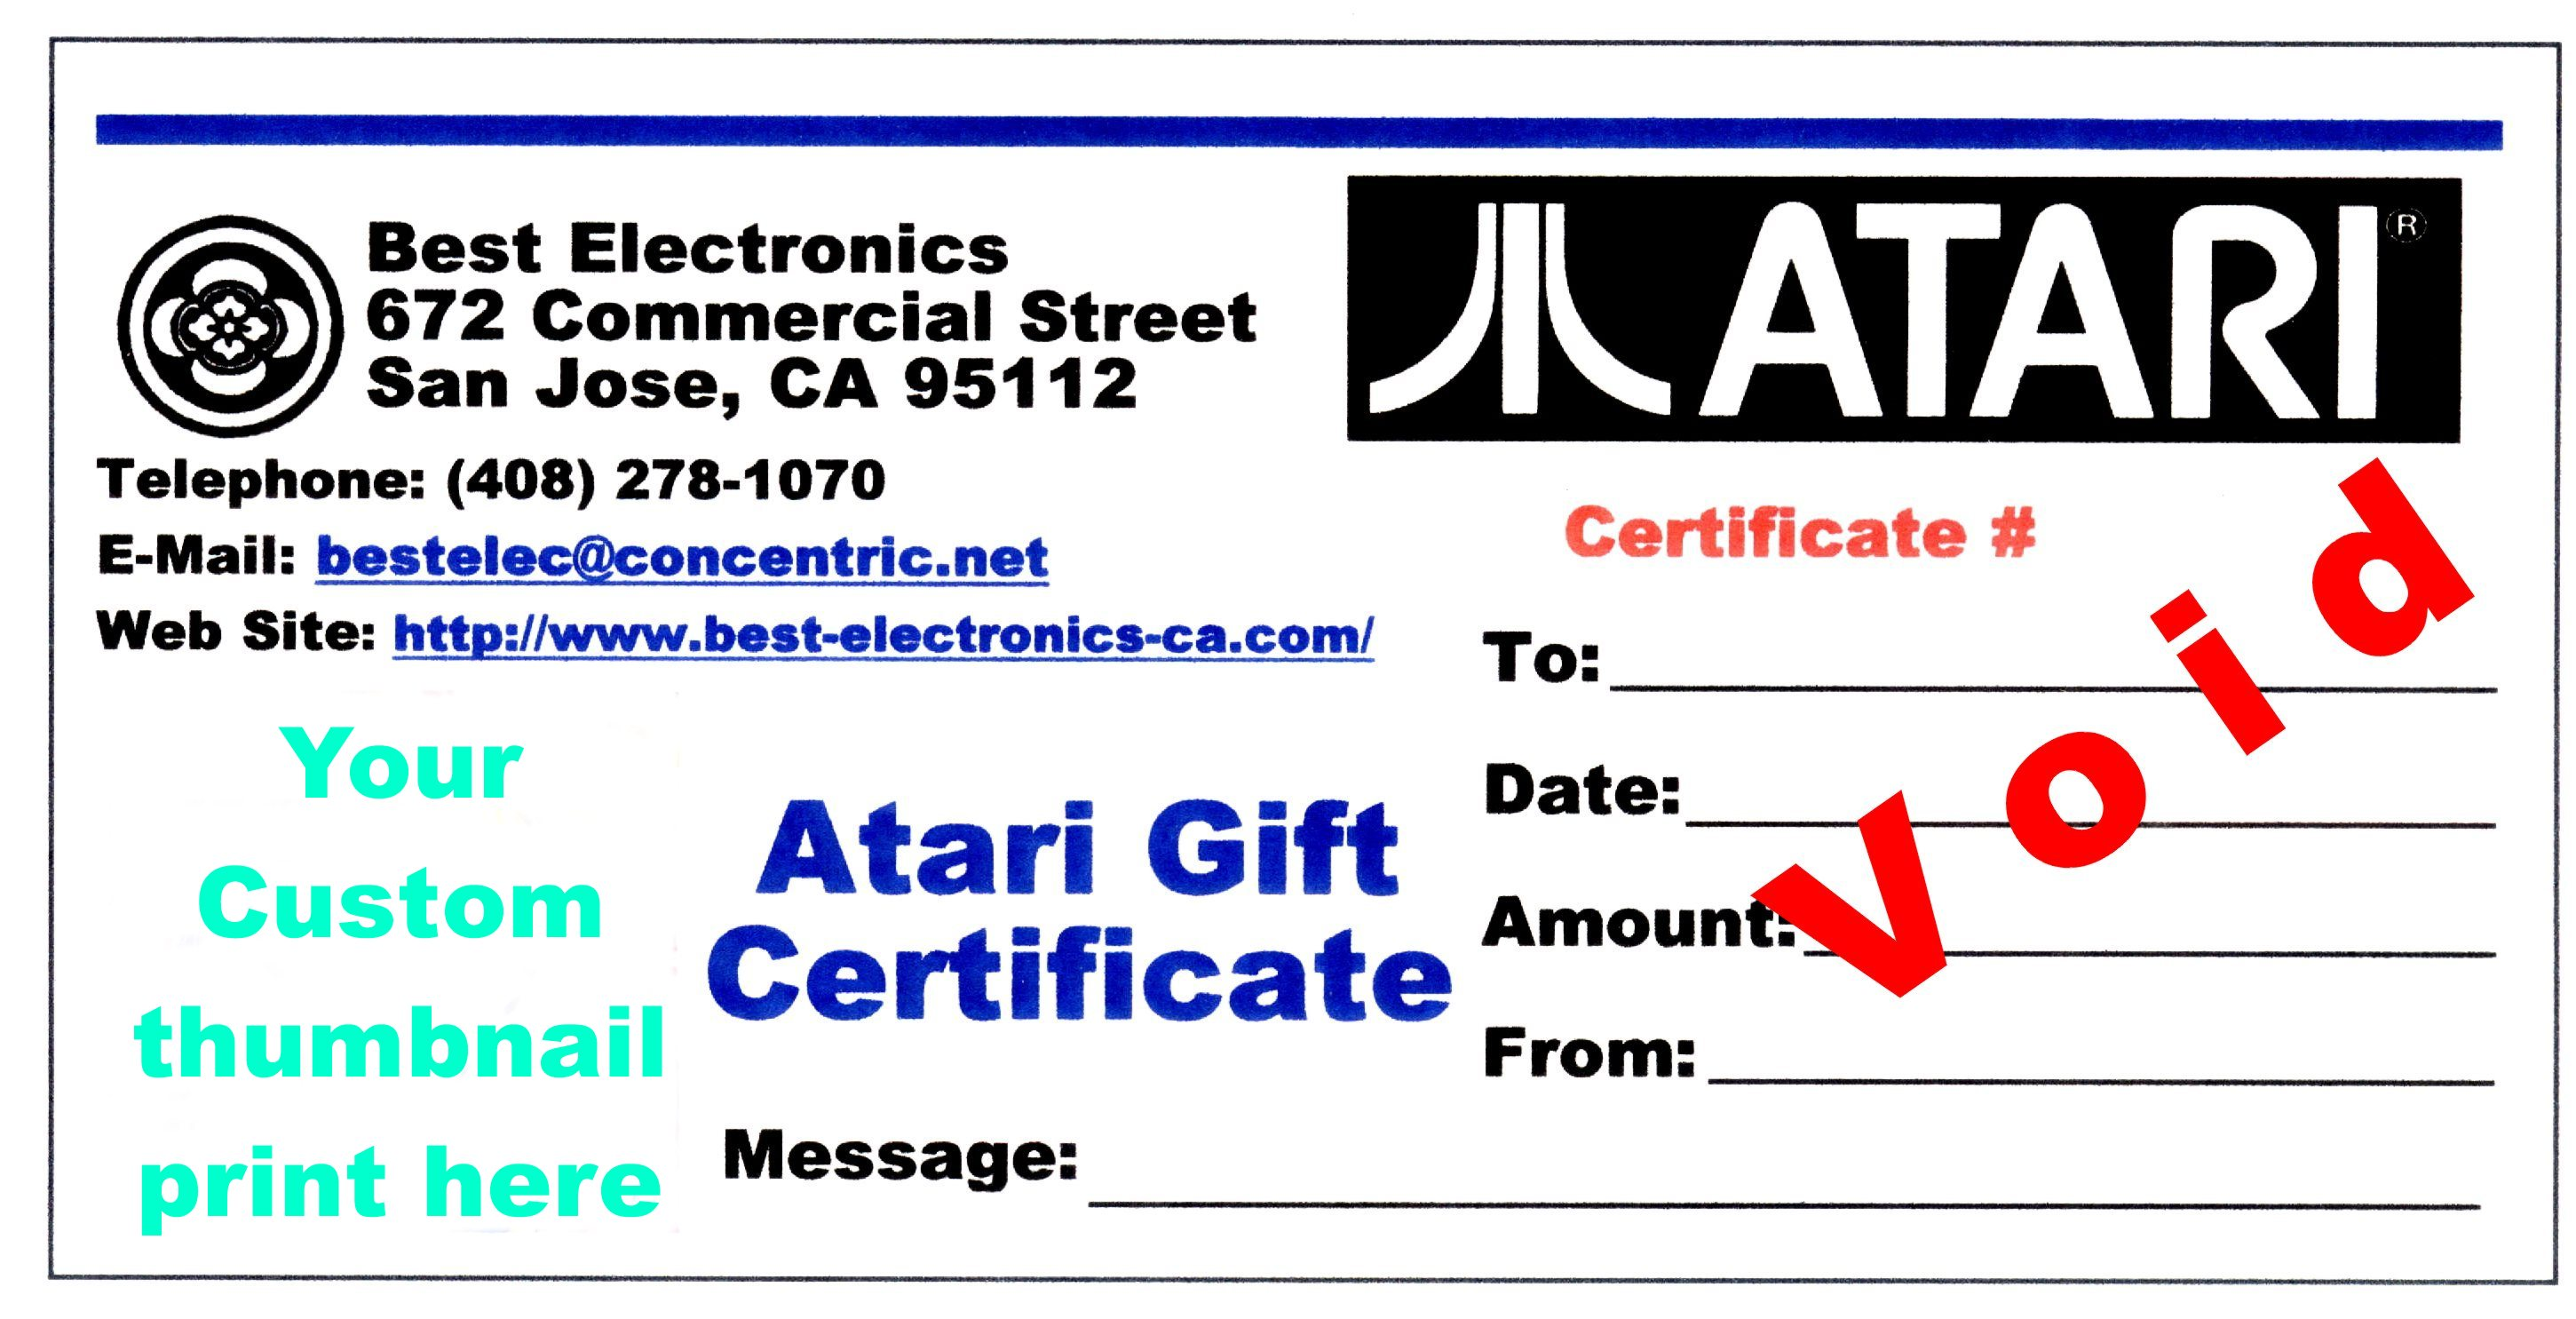 best atari gift certificates we can also do a custom atari gift certificate your own thumb nail jpeg picture you provide e mail us in the bottom left corner no extra charge